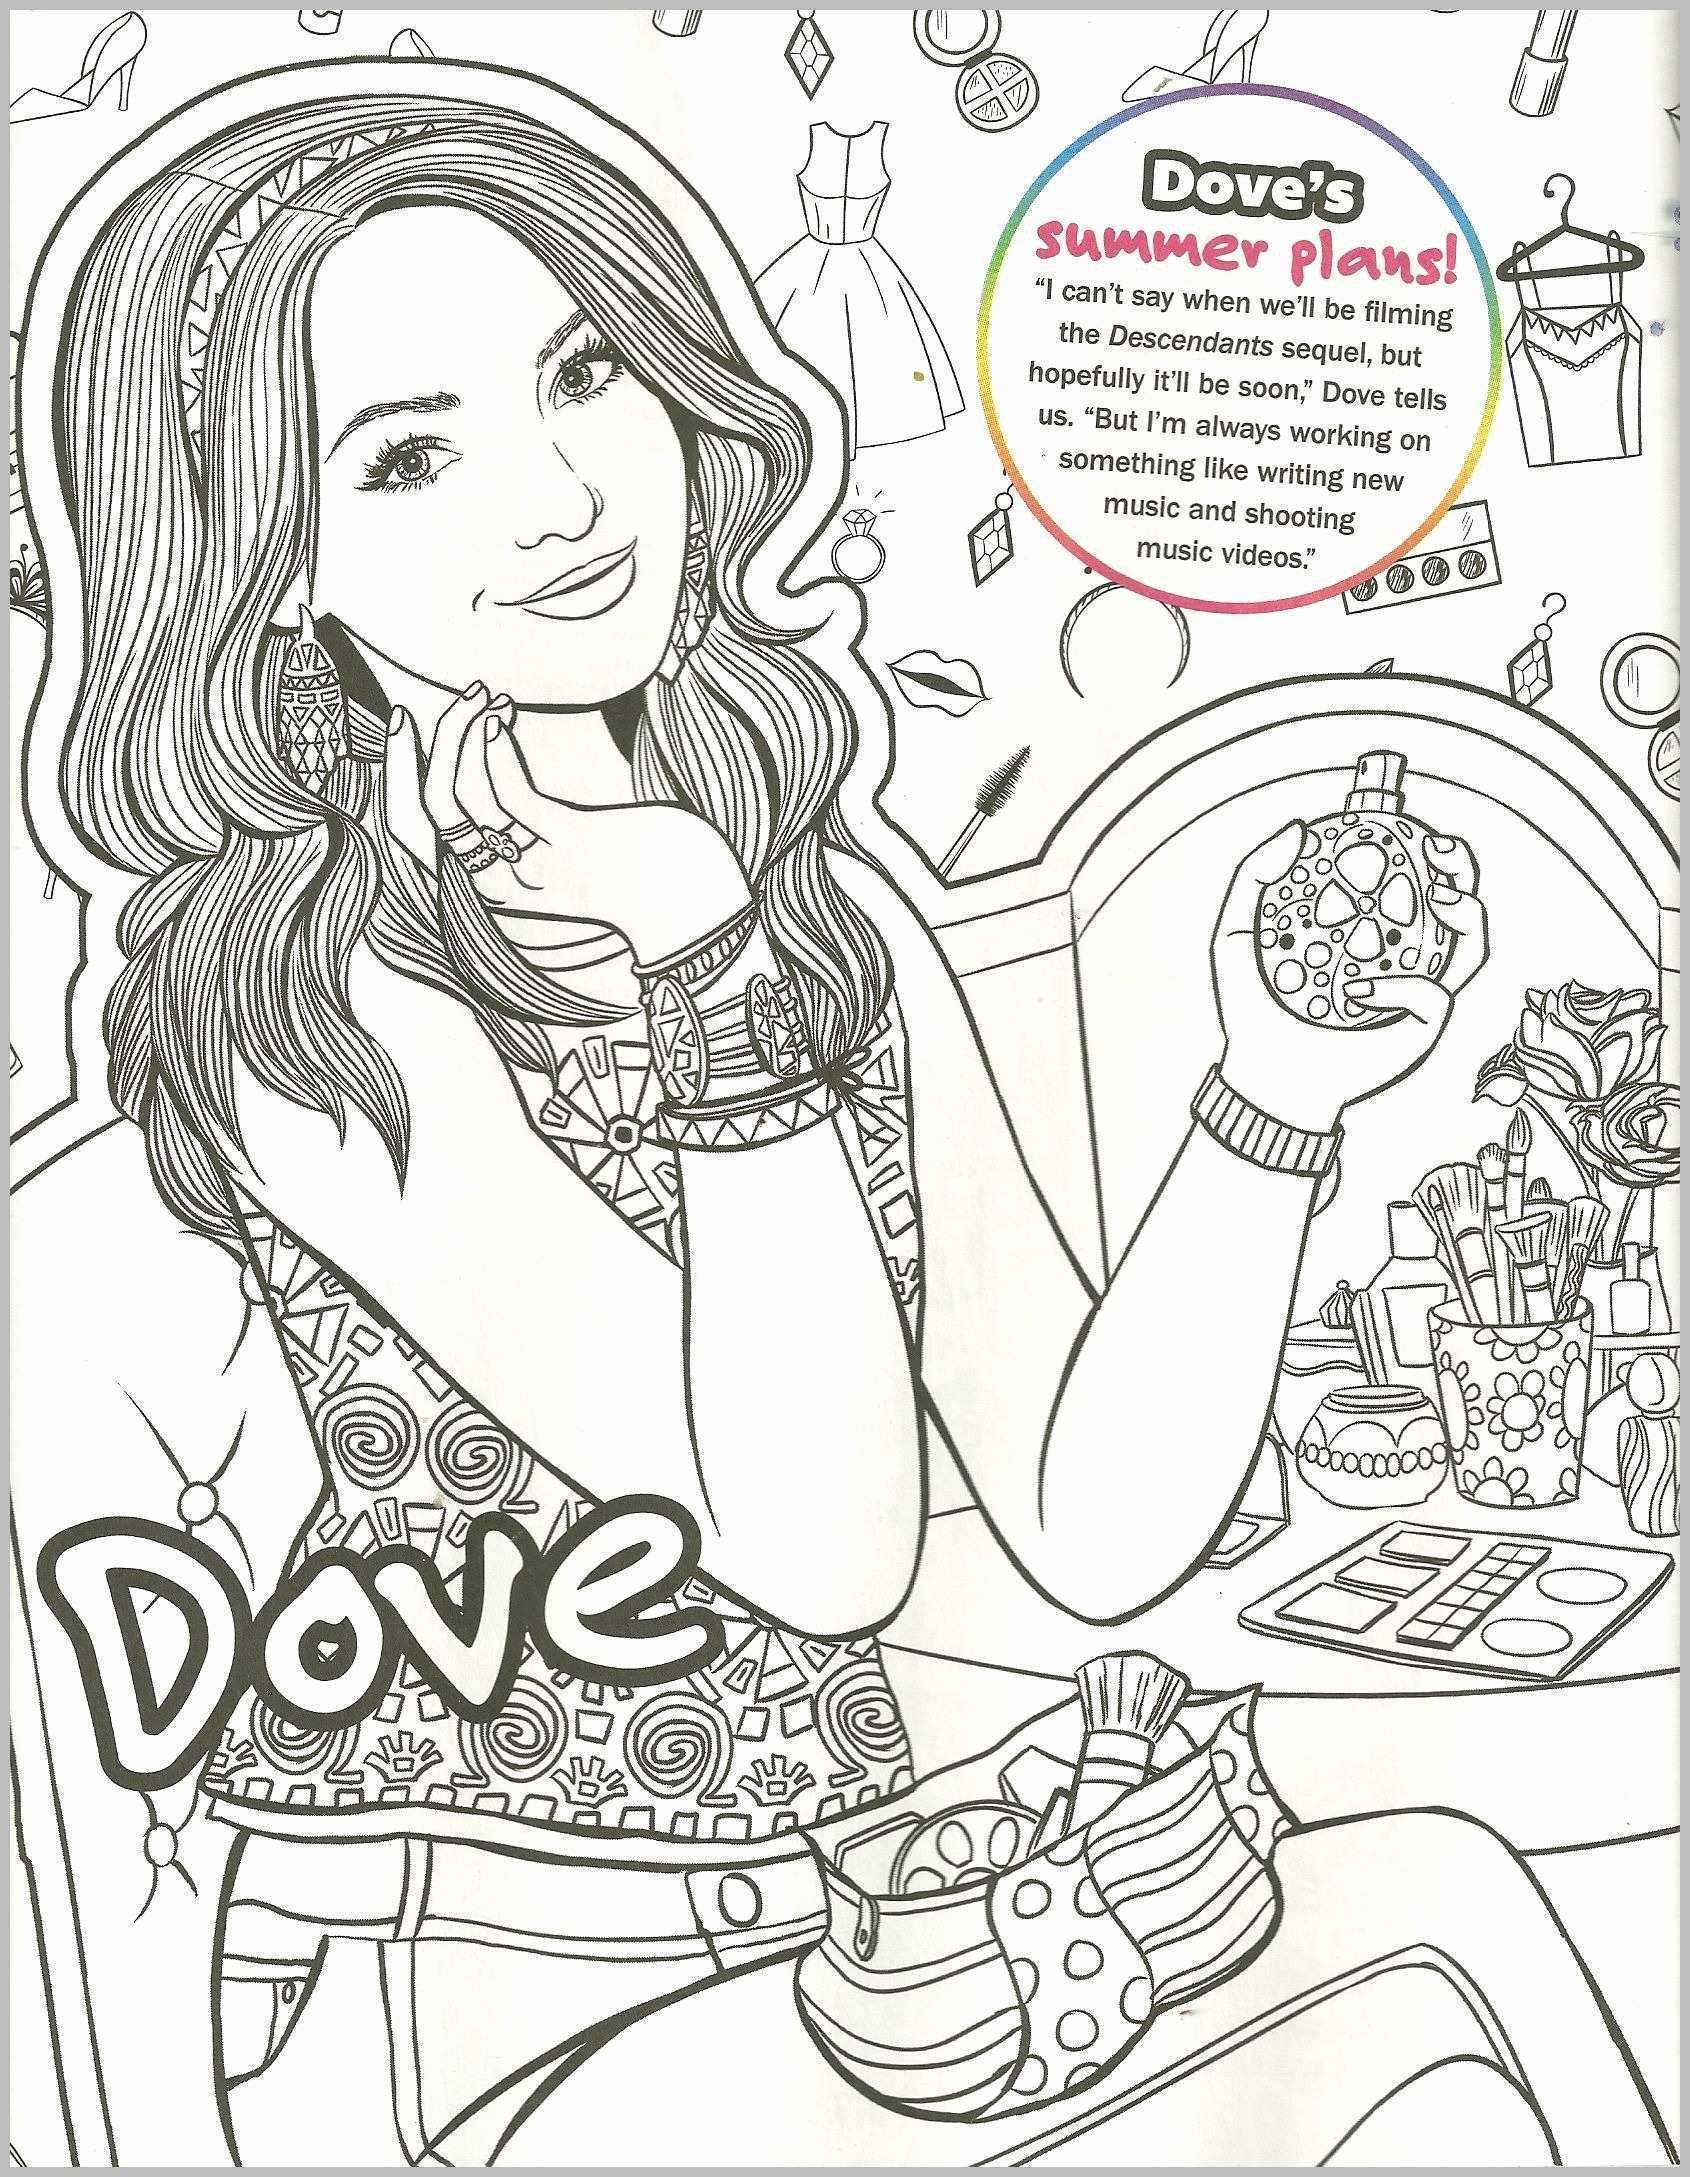 Descendants 2 Coloring Pages Inspirational Coloring Pages Disney Descendants 2 Coloring Book An Descendants Coloring Pages Disney Coloring Pages Coloring Pages